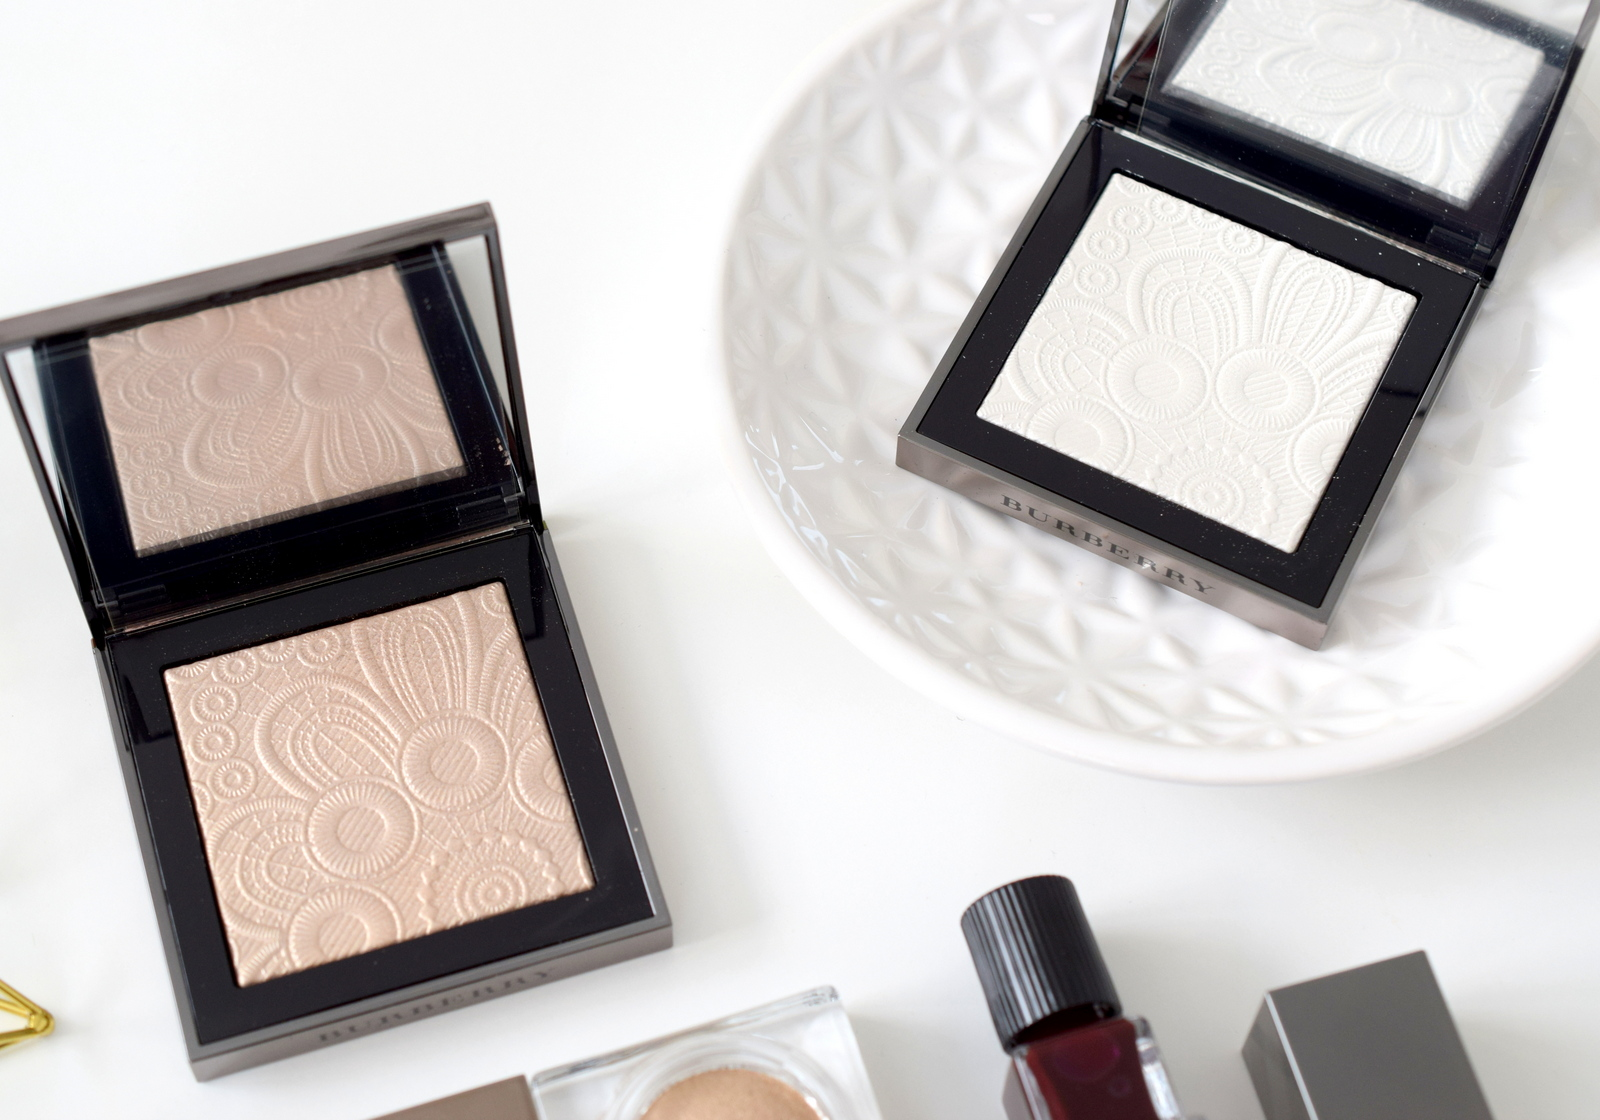 burberry-velvet-lace-review-swatch